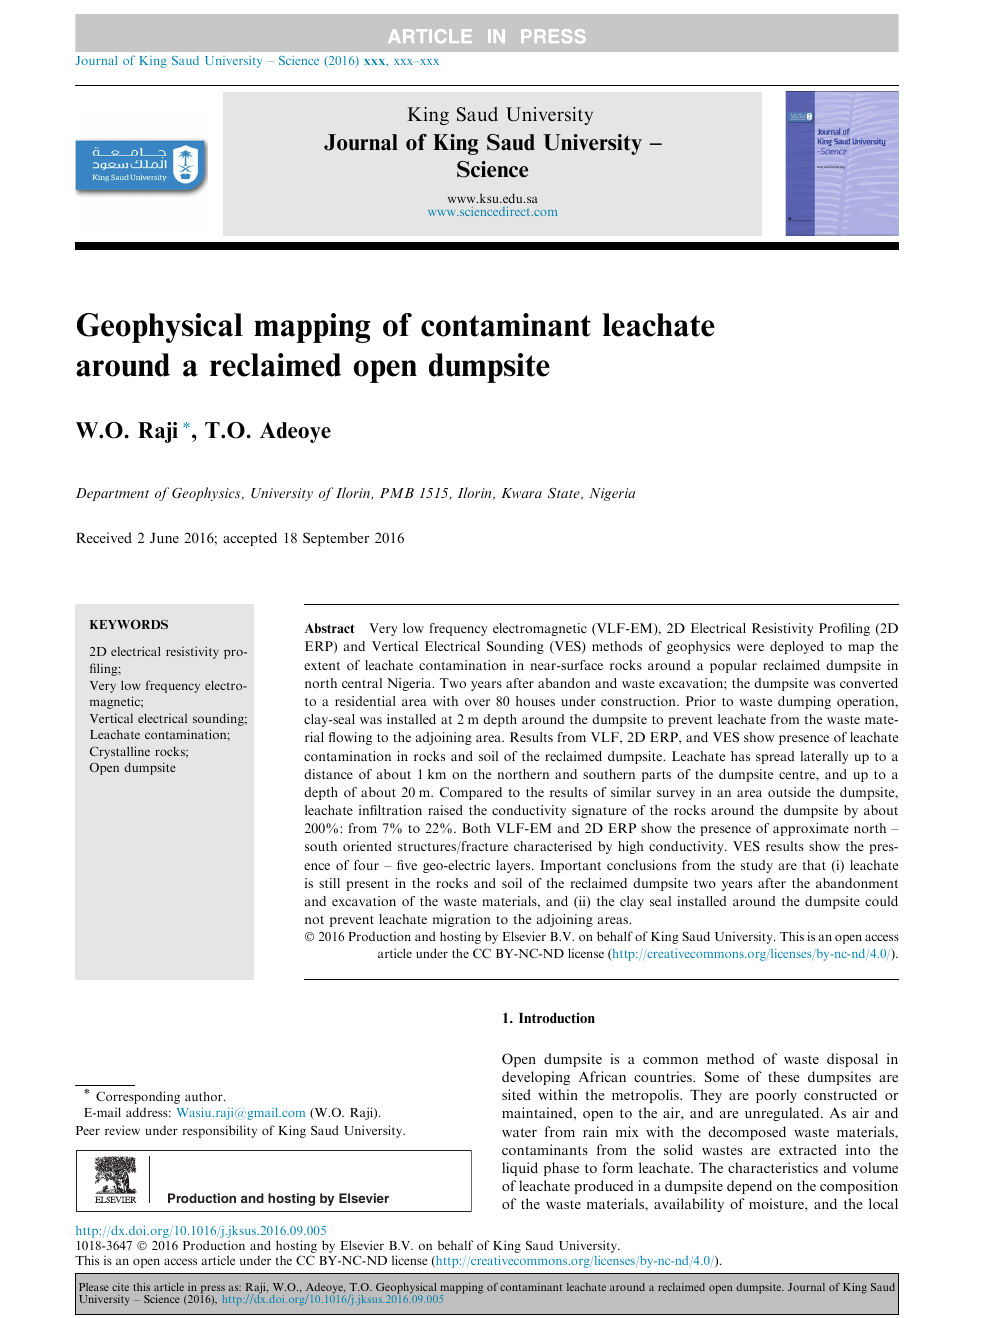 Geophysical mapping of contaminant leachate around a reclaimed open